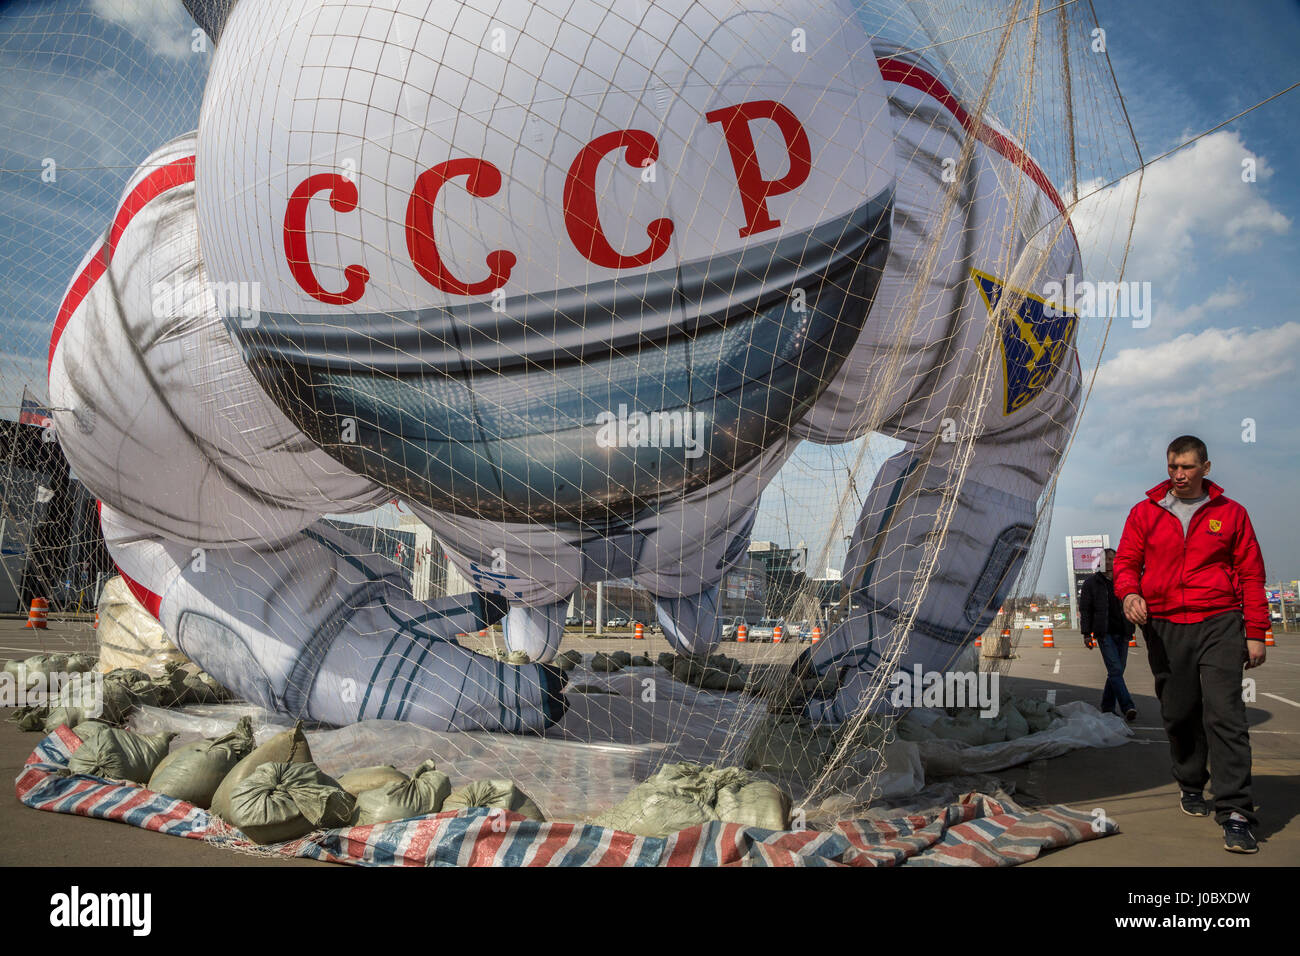 A balloon in the form of a Soviet cosmonaut at a shopping center in Moscow, Russia - Stock Image